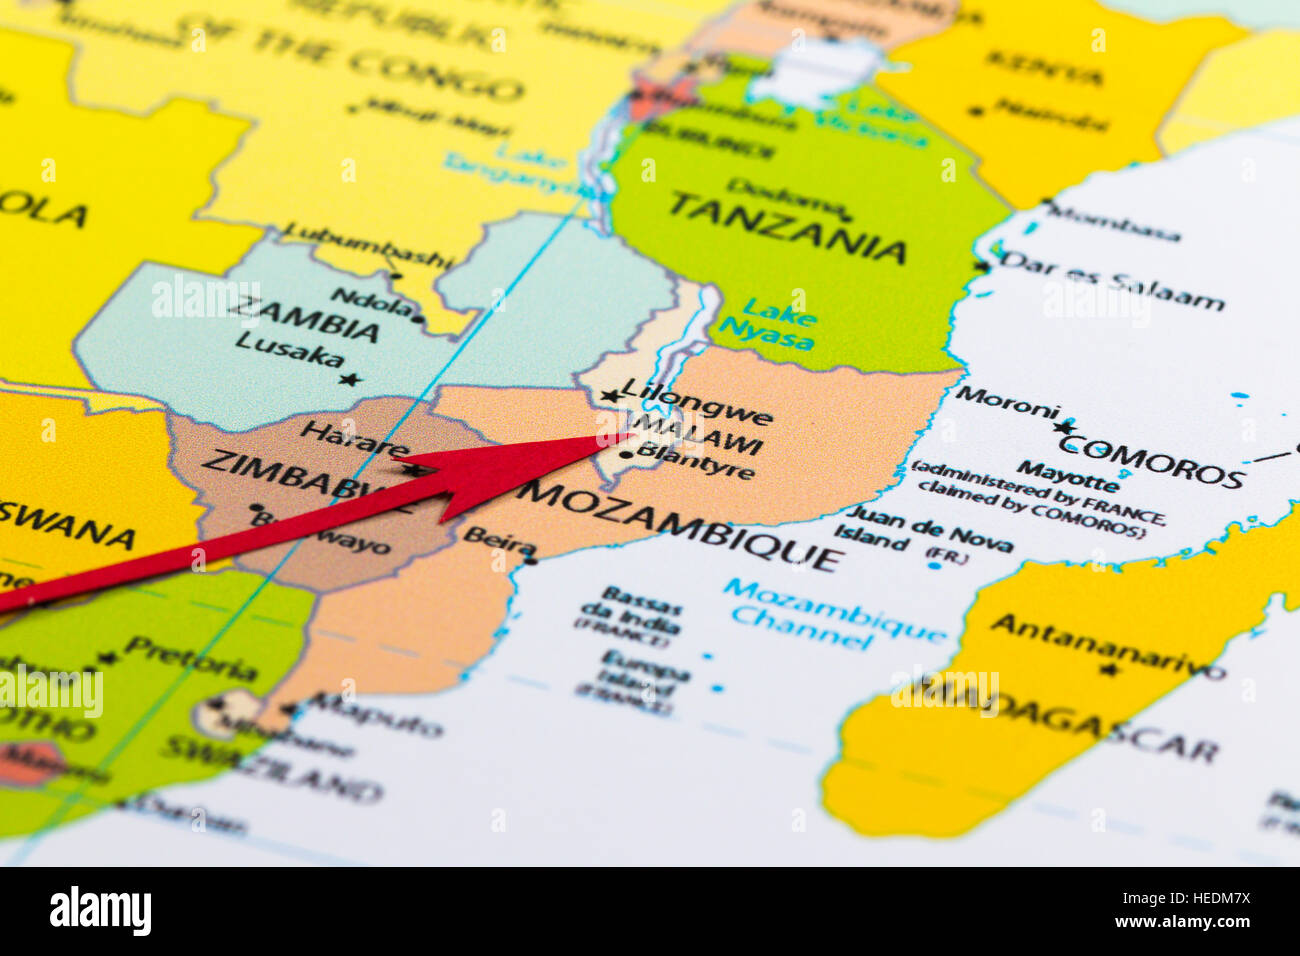 Malawi On Africa Map.Red Arrow Pointing Malawi On The Map Of Africa Continent Stock Photo